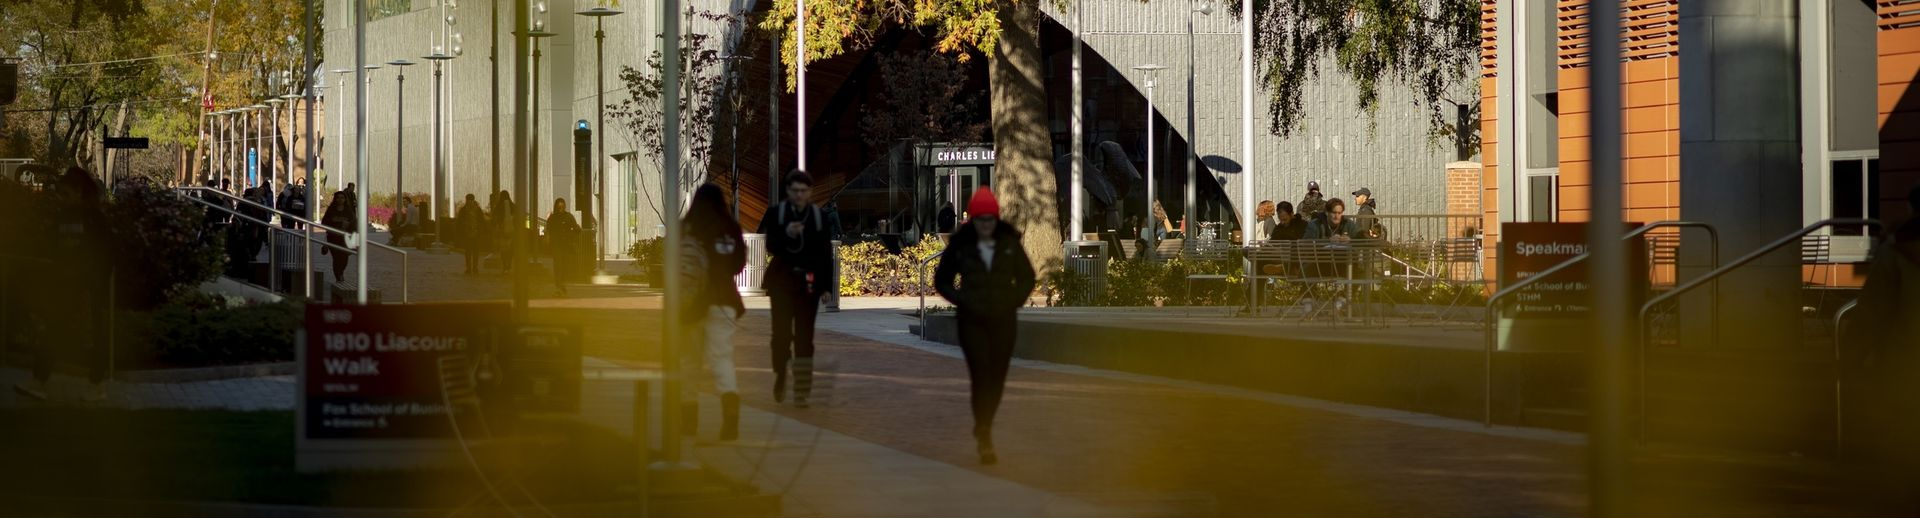 Students walking across Liacouras Walk on Main Campus on a fall day